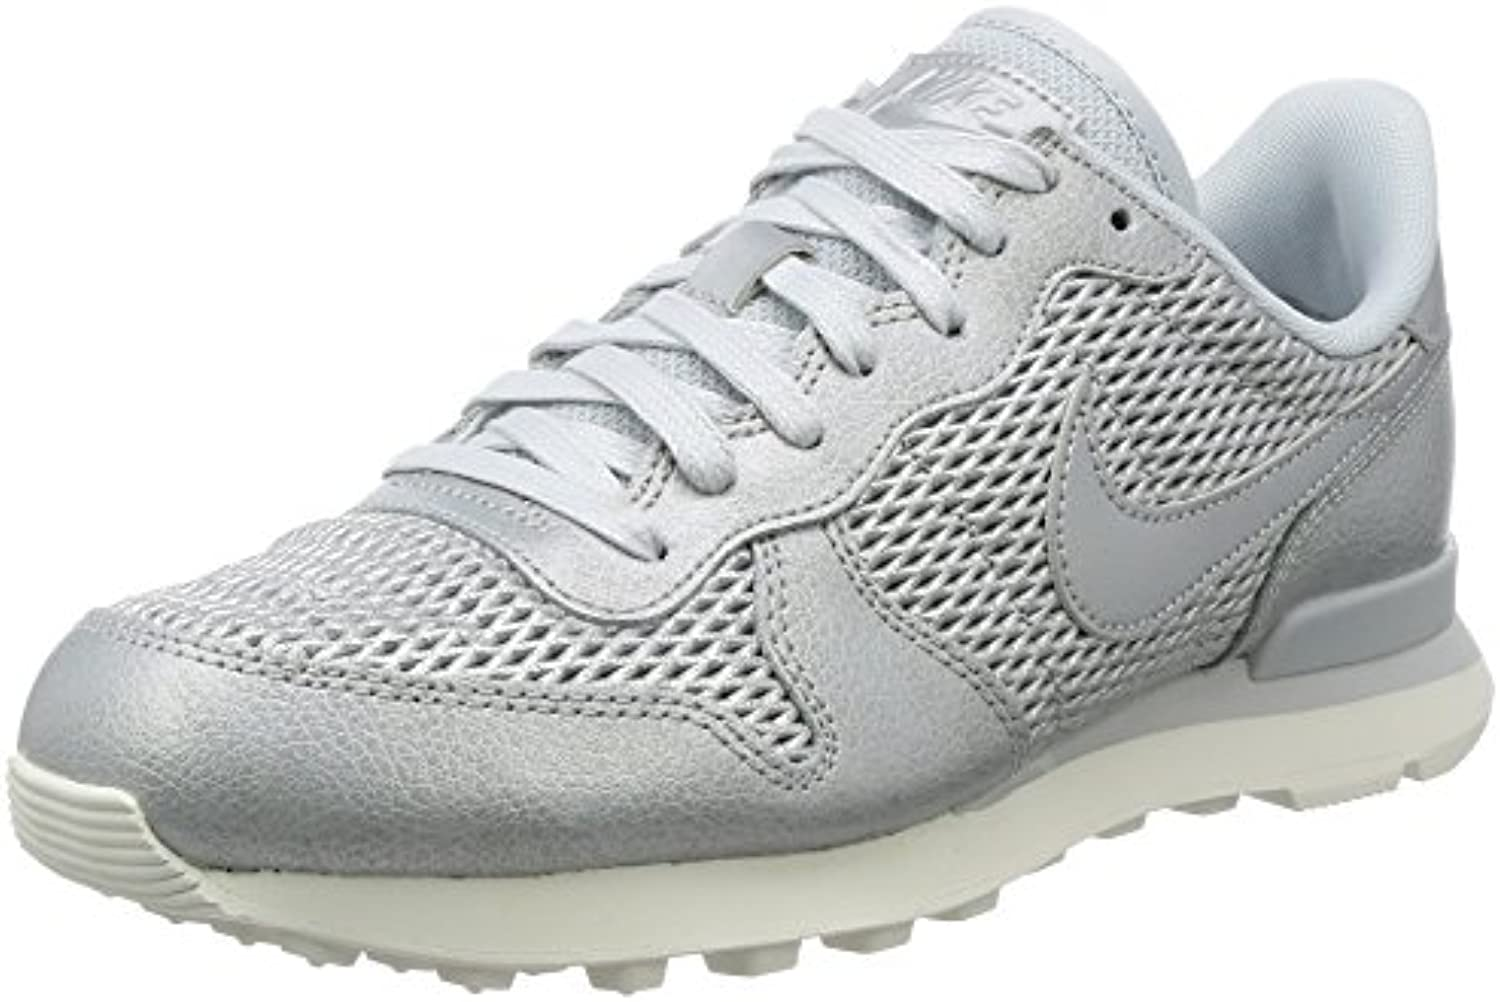 Man's/Woman's NIKE Women''s Trainers W Internationalist PRM Trainers Women''s bargain Upper material Clearance sale 7715a2